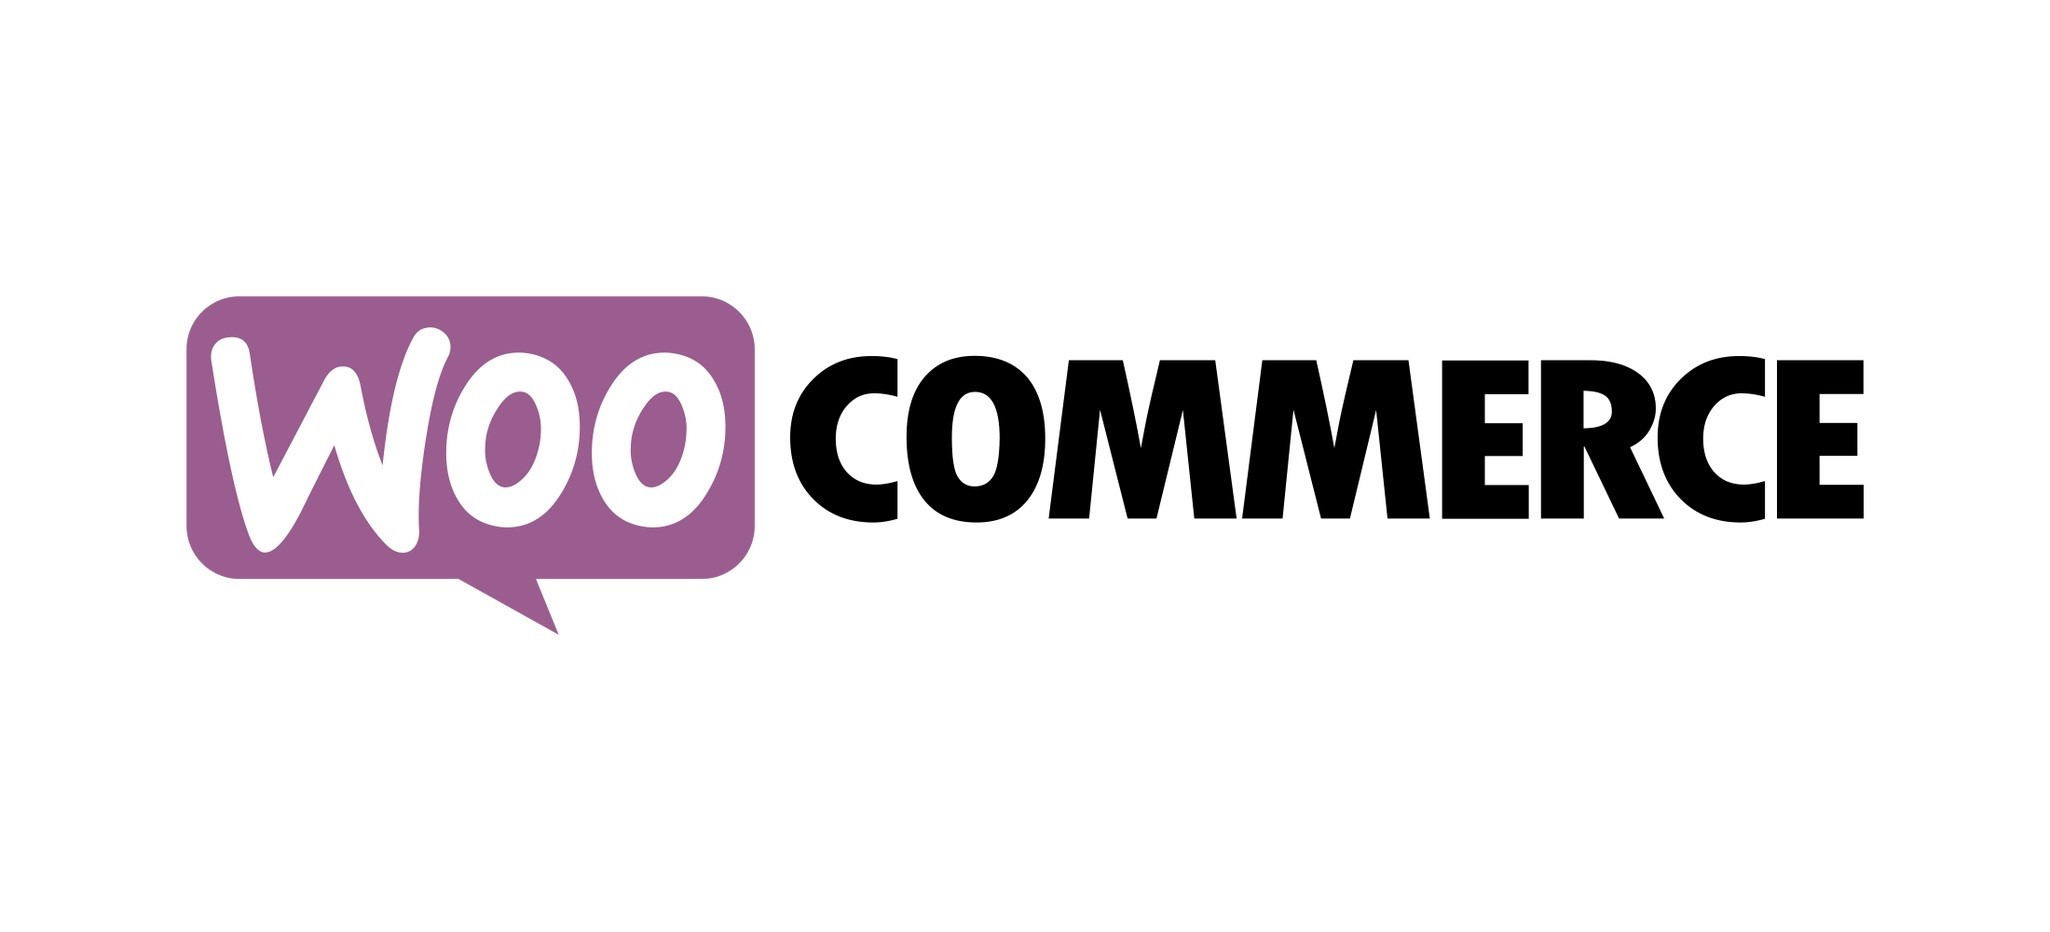 best ecommerce sites woocommerce